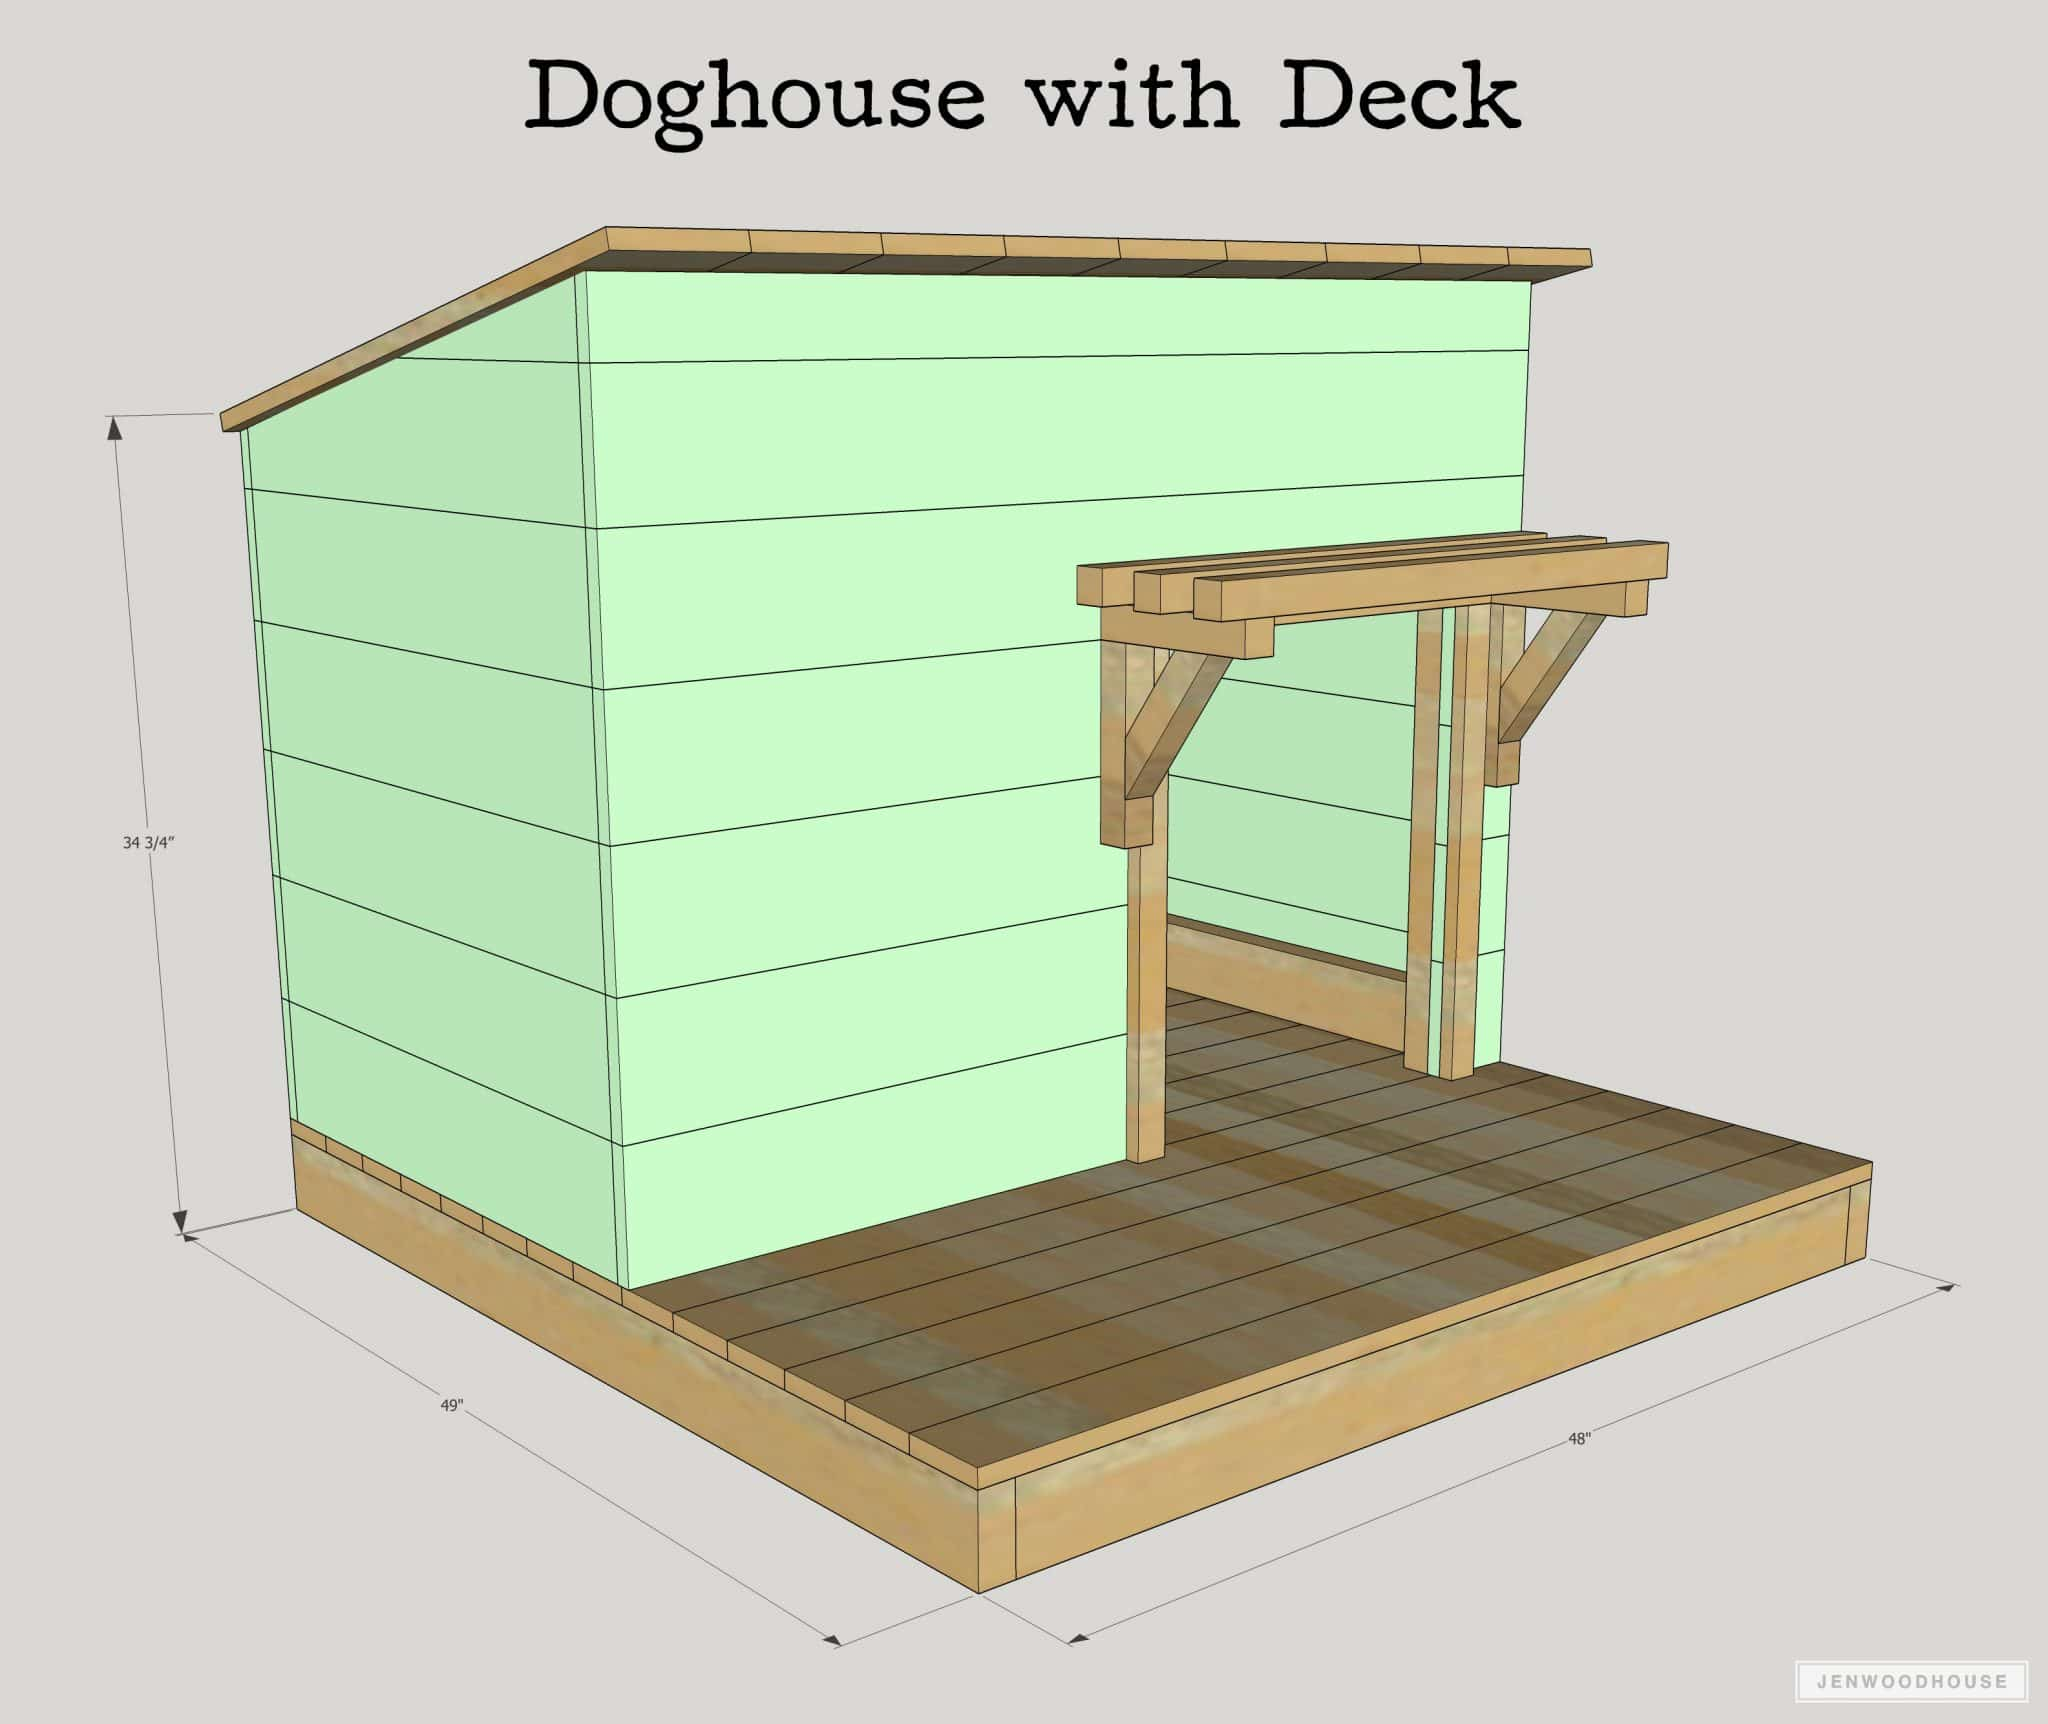 Porch Vs Deck Which Is The More Befitting For Your Home: DIY Doghouse With Deck, Toy Box, And Food Bowl